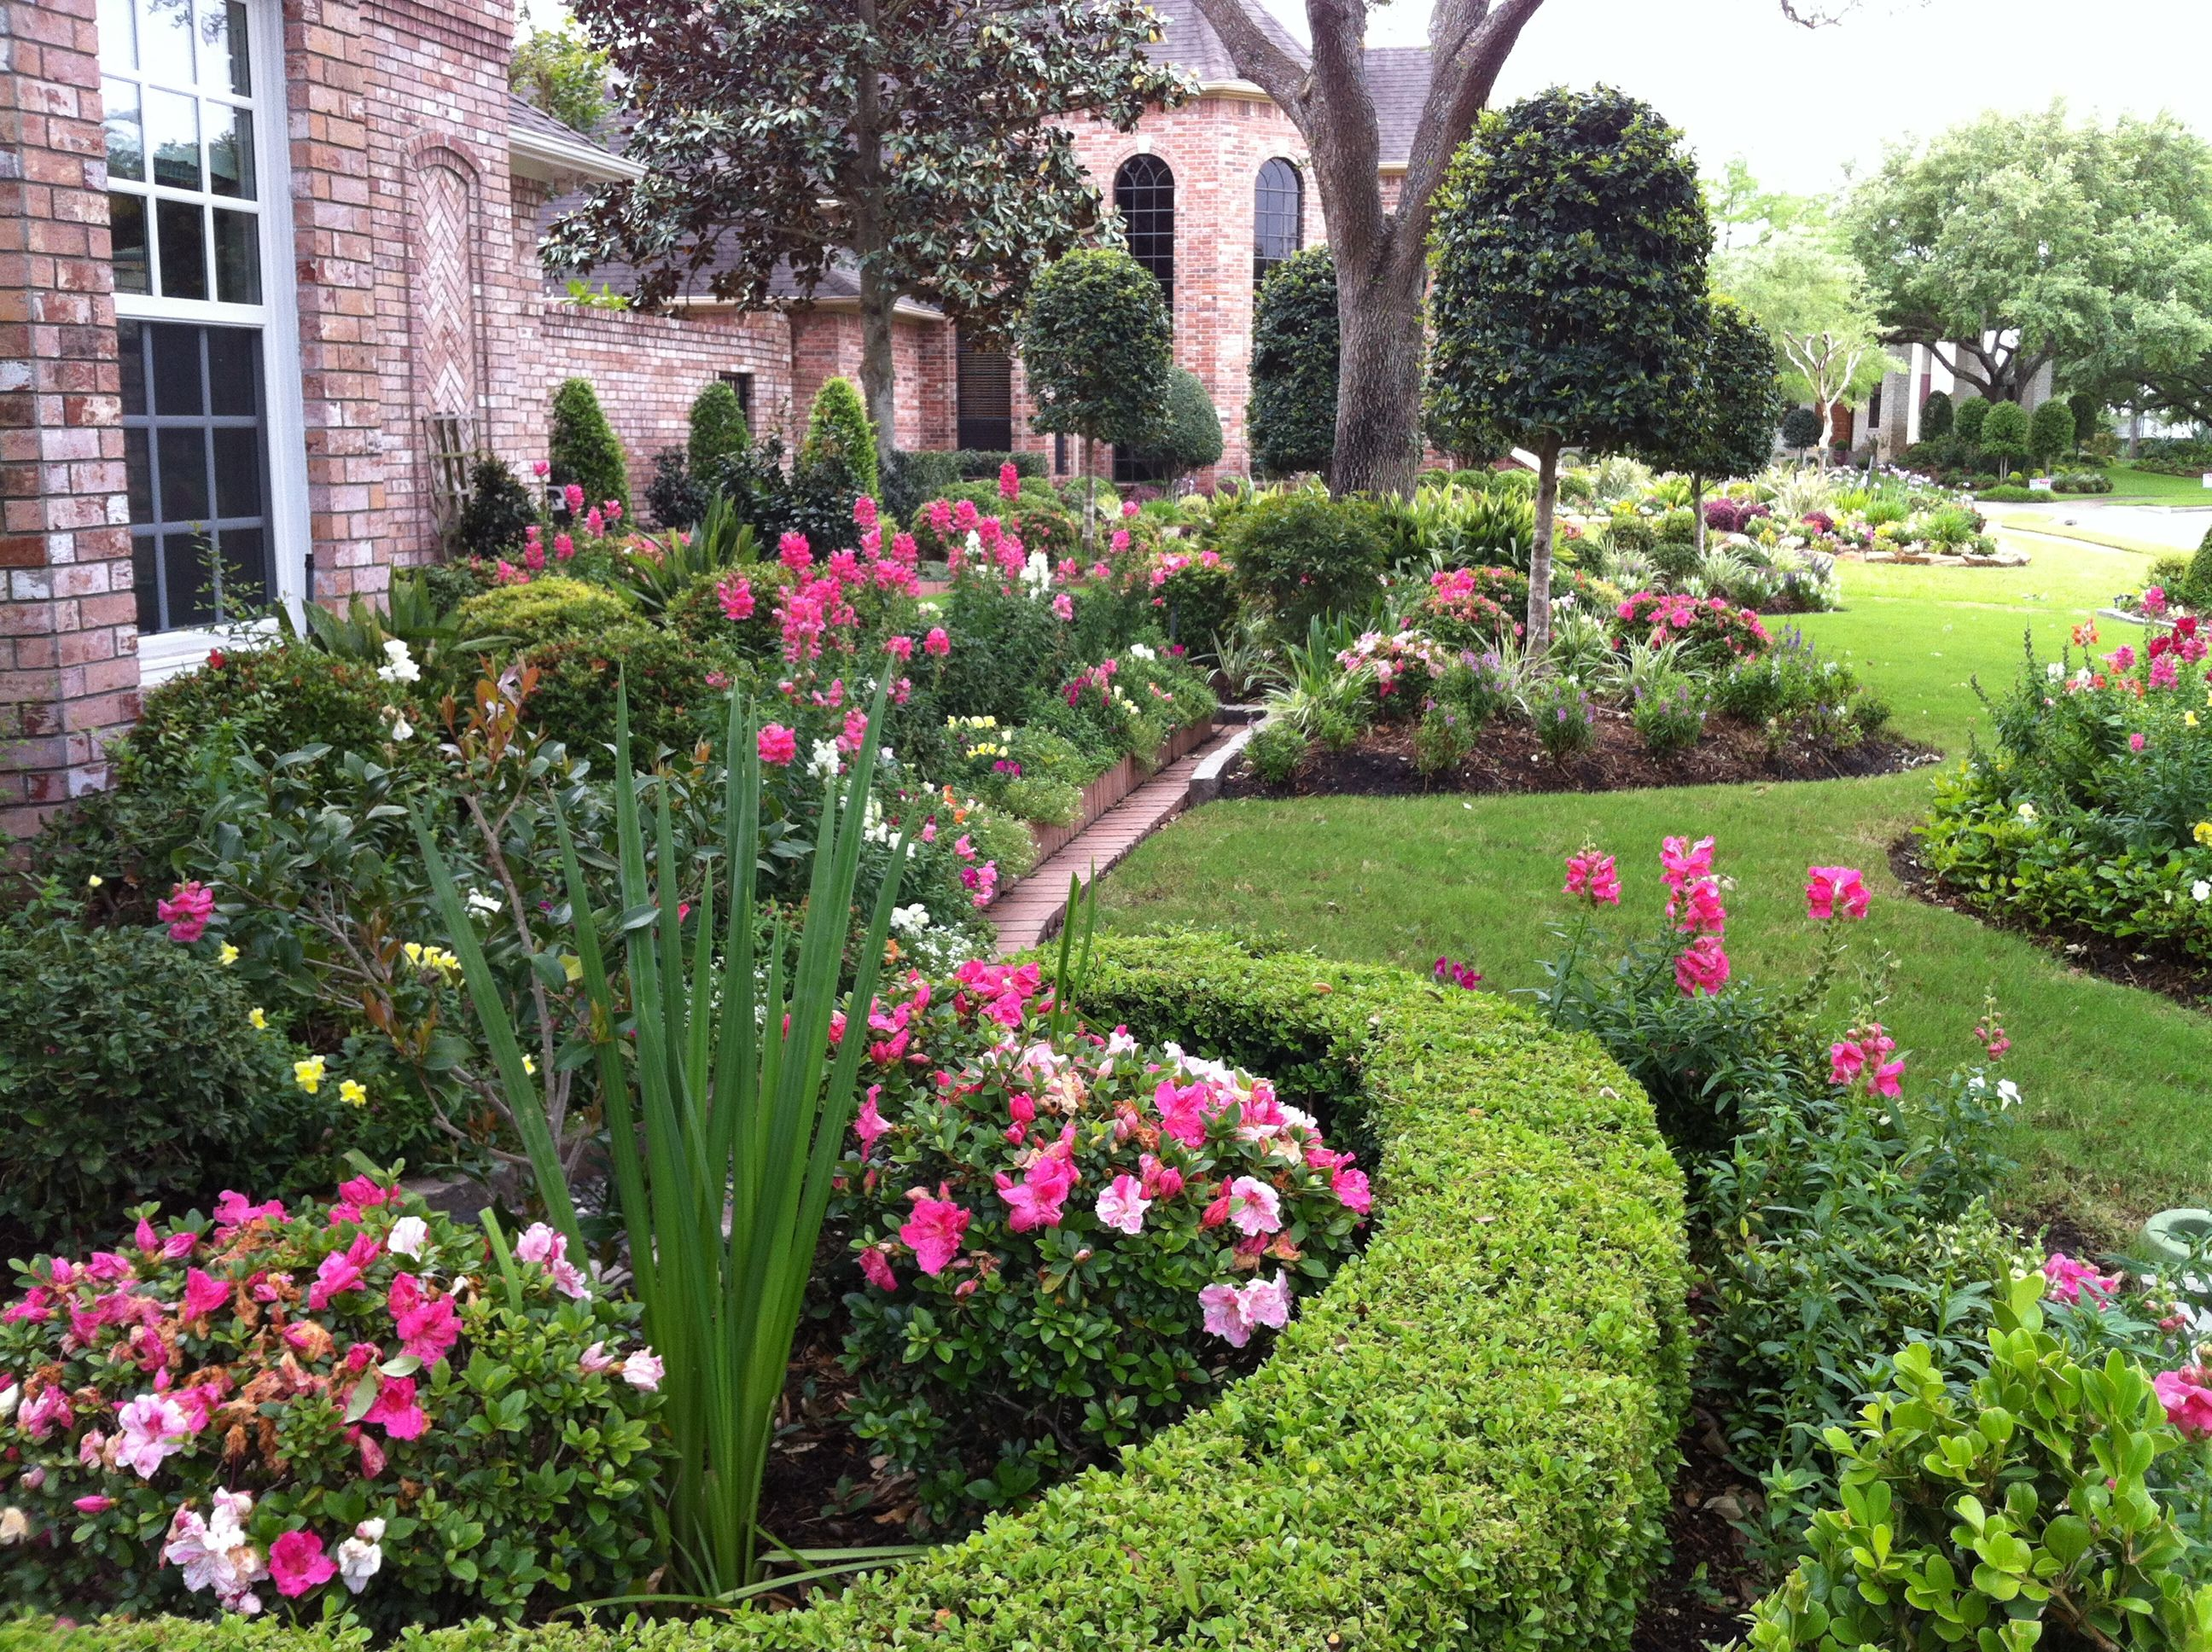 Residential flower gardens - Ornamental Boxwoods Help Shape The Beds While Conversation Piece Azaleas Produce Beautiful Blooms 3 To 4